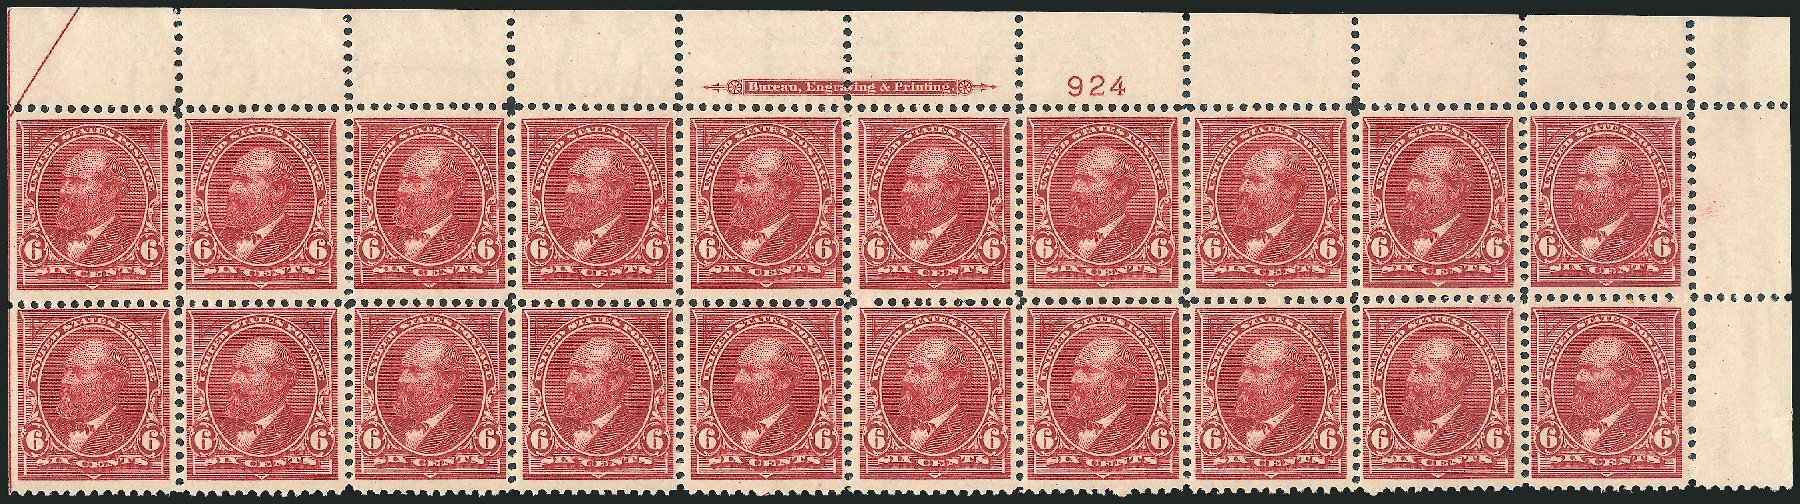 US Stamp Prices Scott Catalog #282 - 6c 1898 Garfield. Robert Siegel Auction Galleries, Feb 2015, Sale 1092, Lot 1223